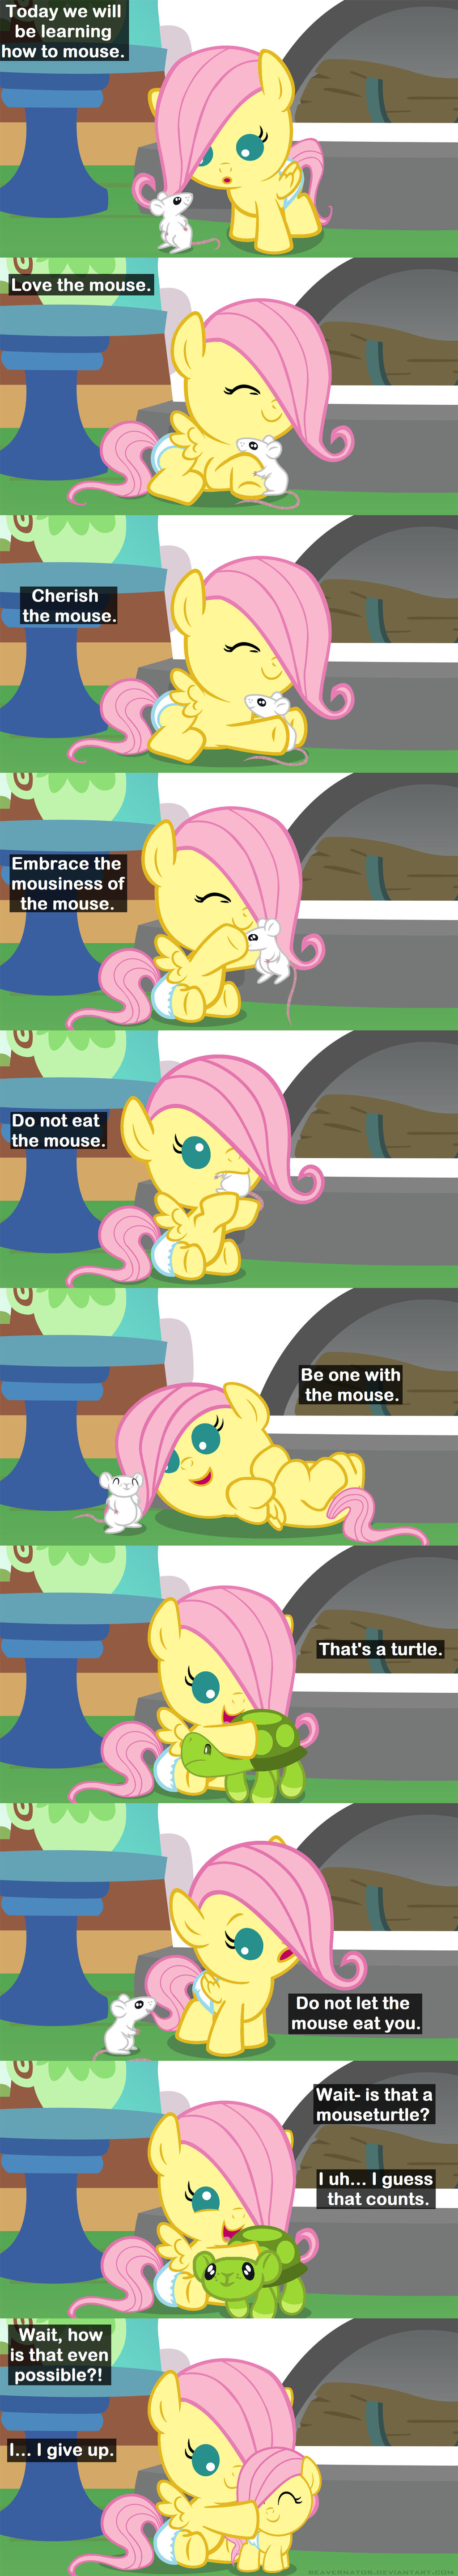 How To Mouse